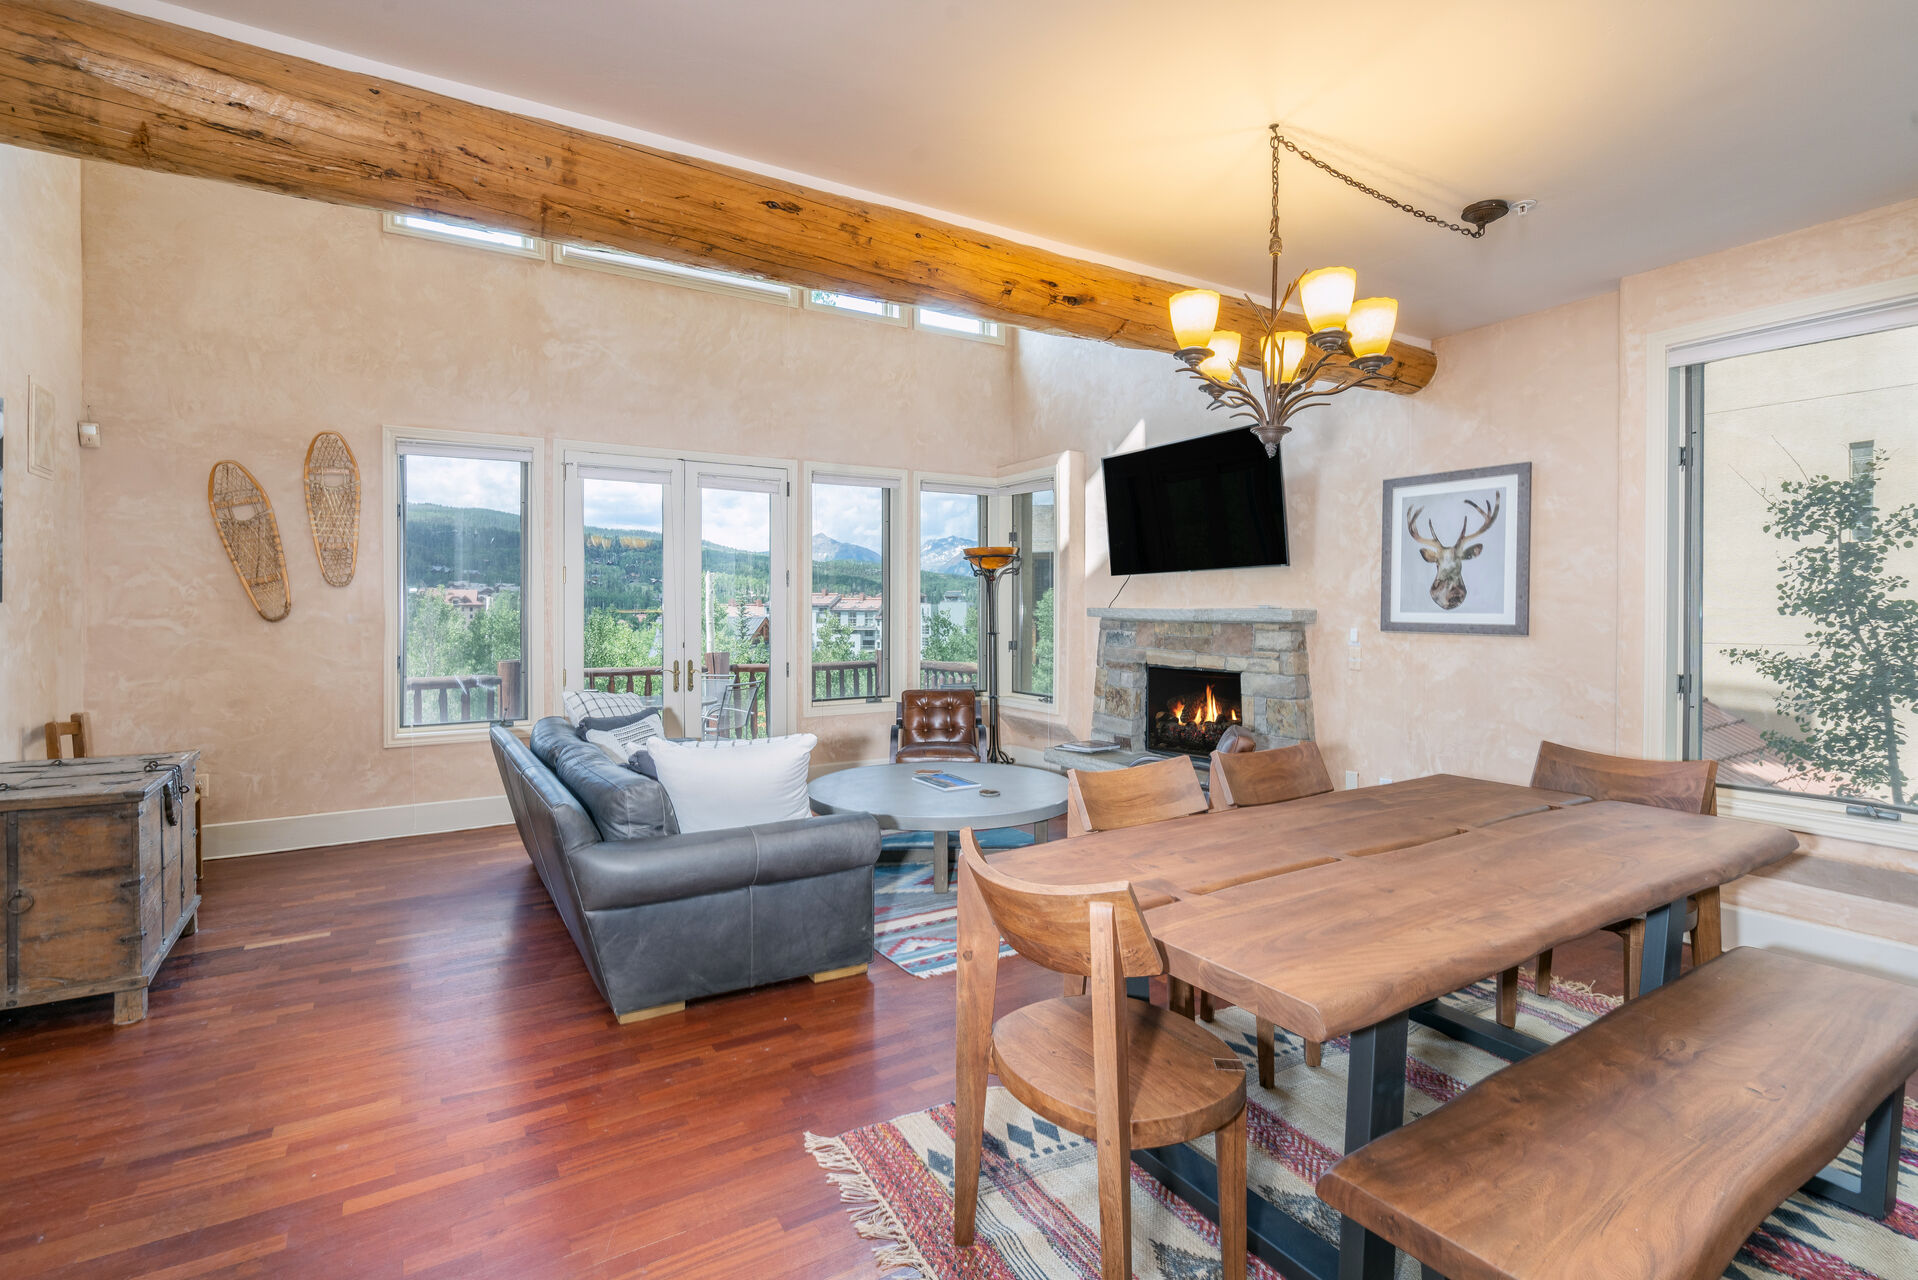 Spacious living and dining room with wood floor and wood beam